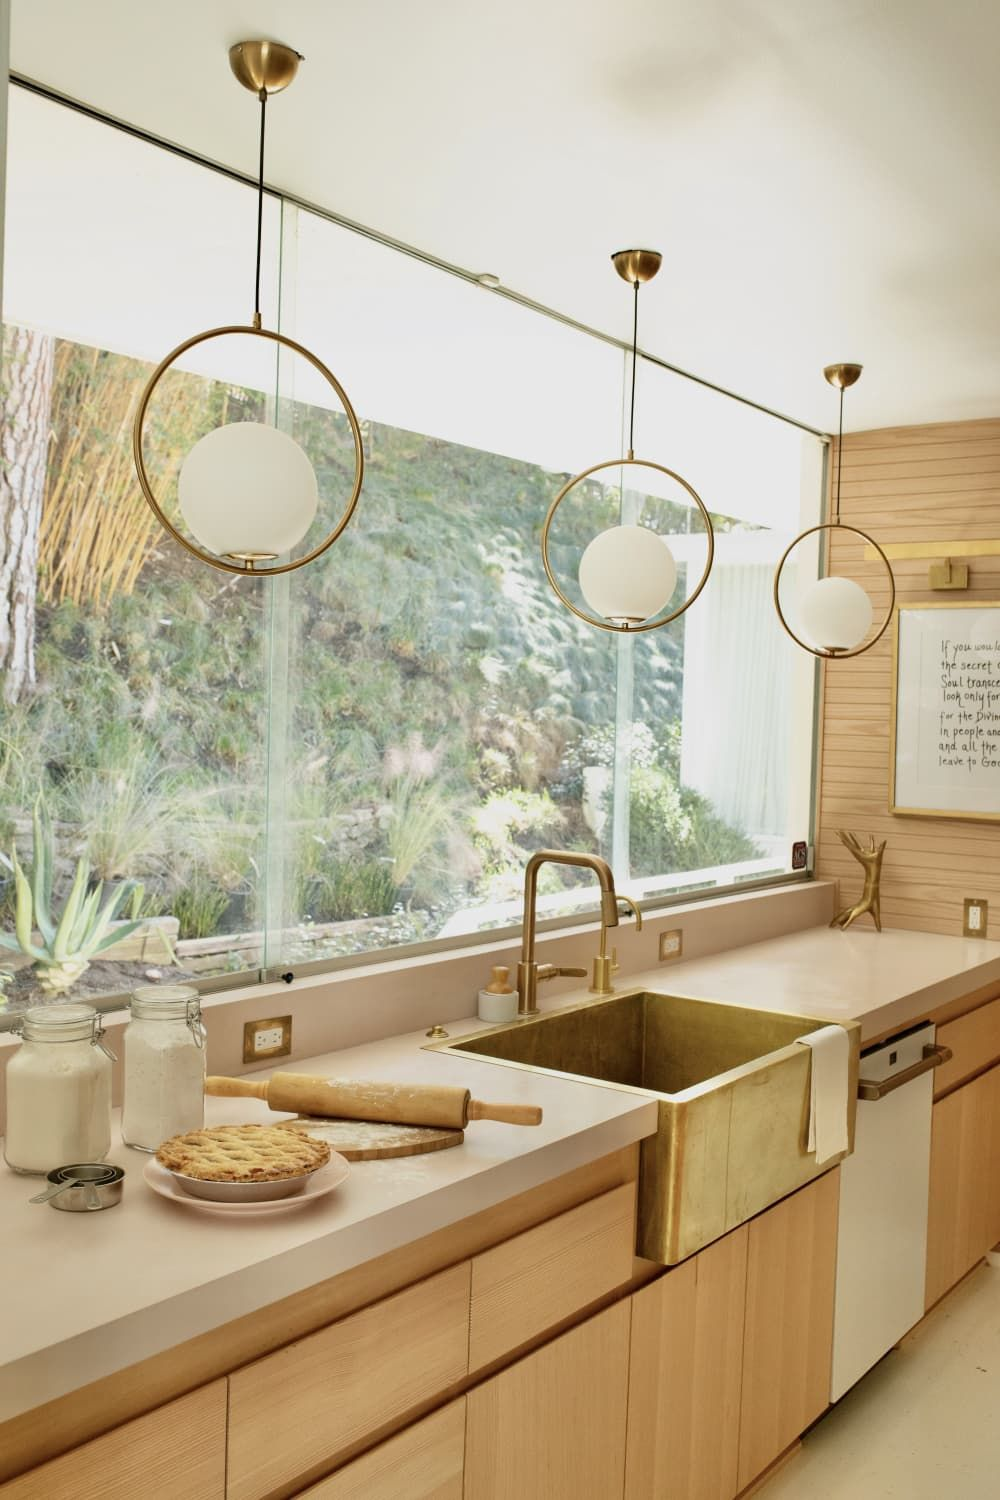 7 Kitchen Trends That Will Takeover in 2021, According to Designers